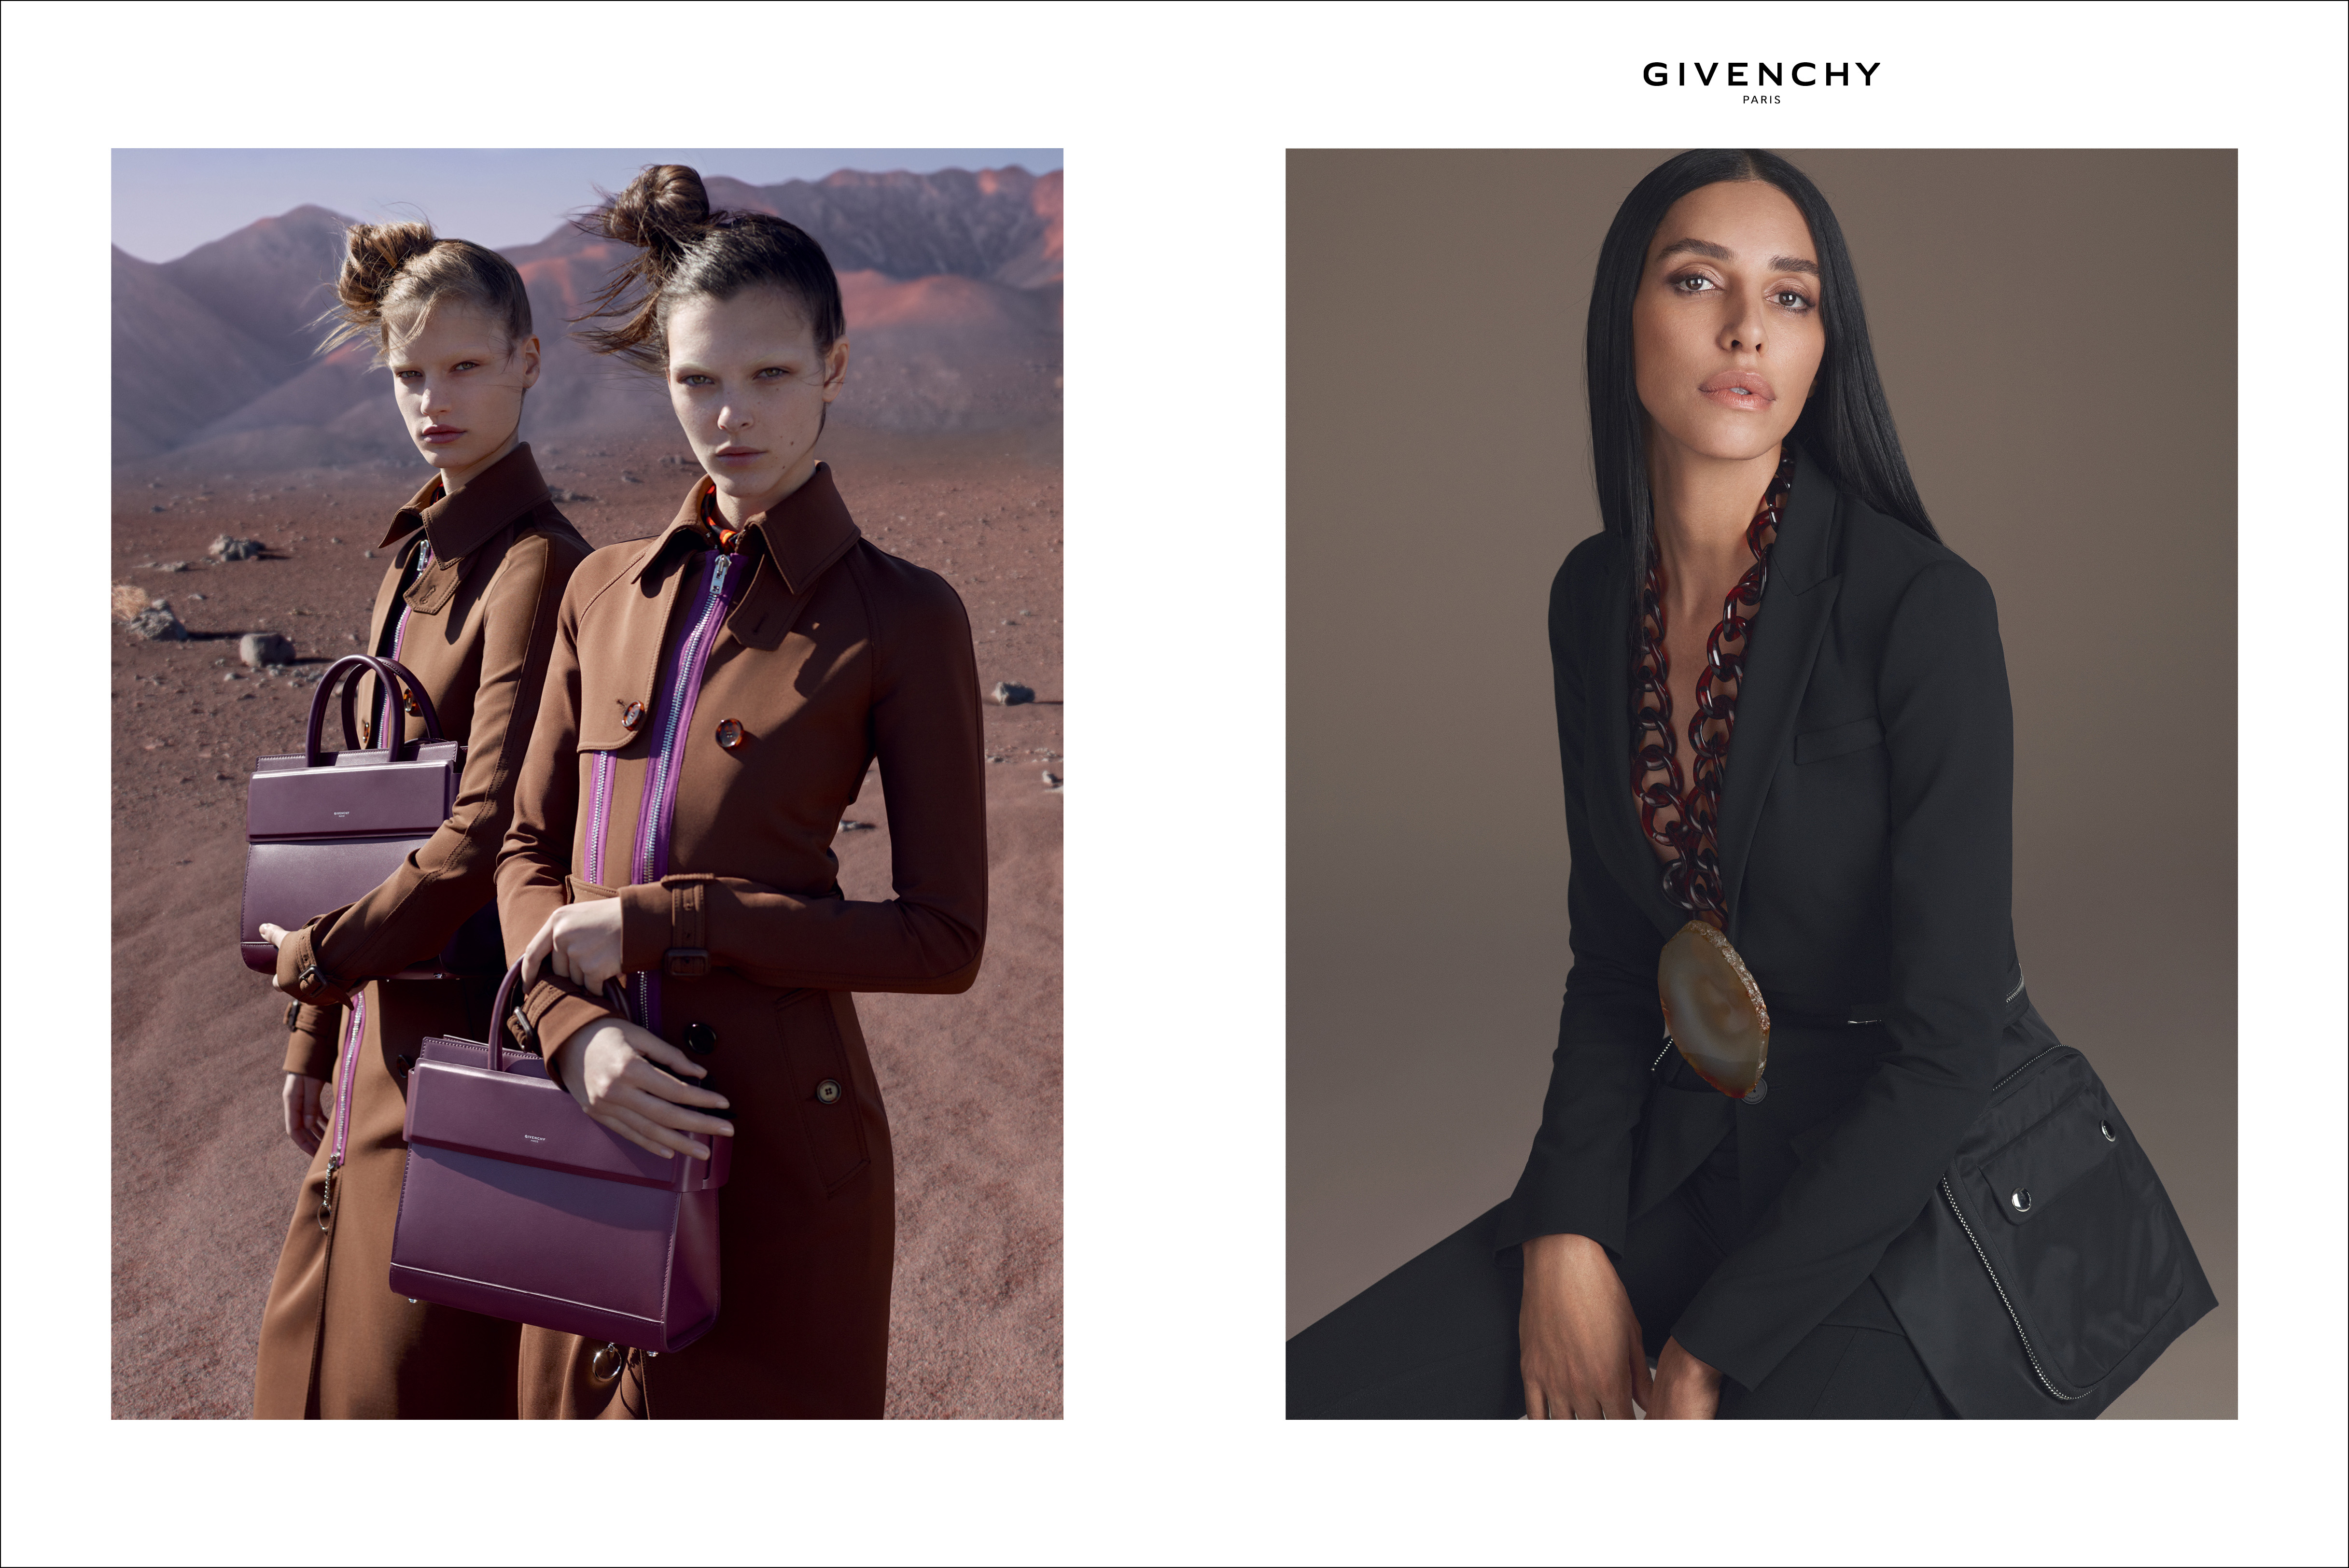 Fashion style Fall givenchy campaign for girls